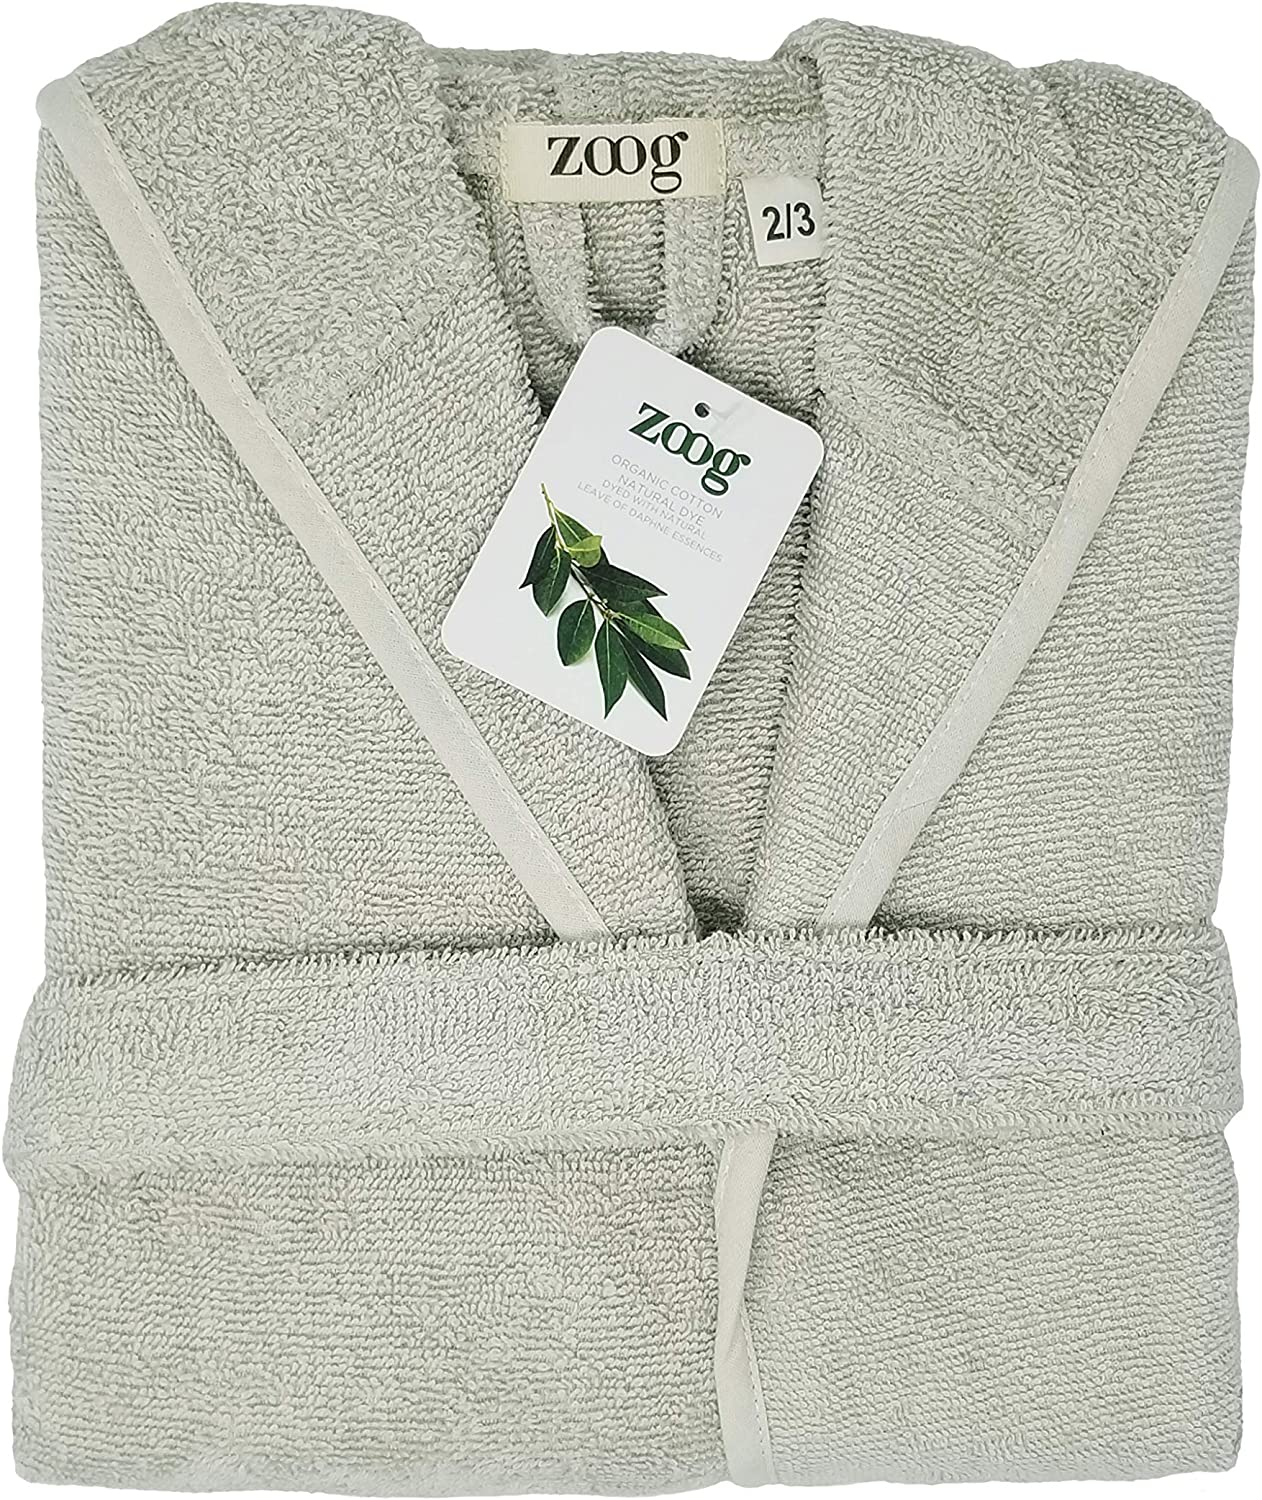 2-3 Years, Blue Zoog Premium Quality GOTS Certified 100/% Organic Cotton Natural Dye No Chemical Completely Vegan Natural Soft Comfortable Baby Hooded Blue Pink Green Yellow Toddler Bath Robe